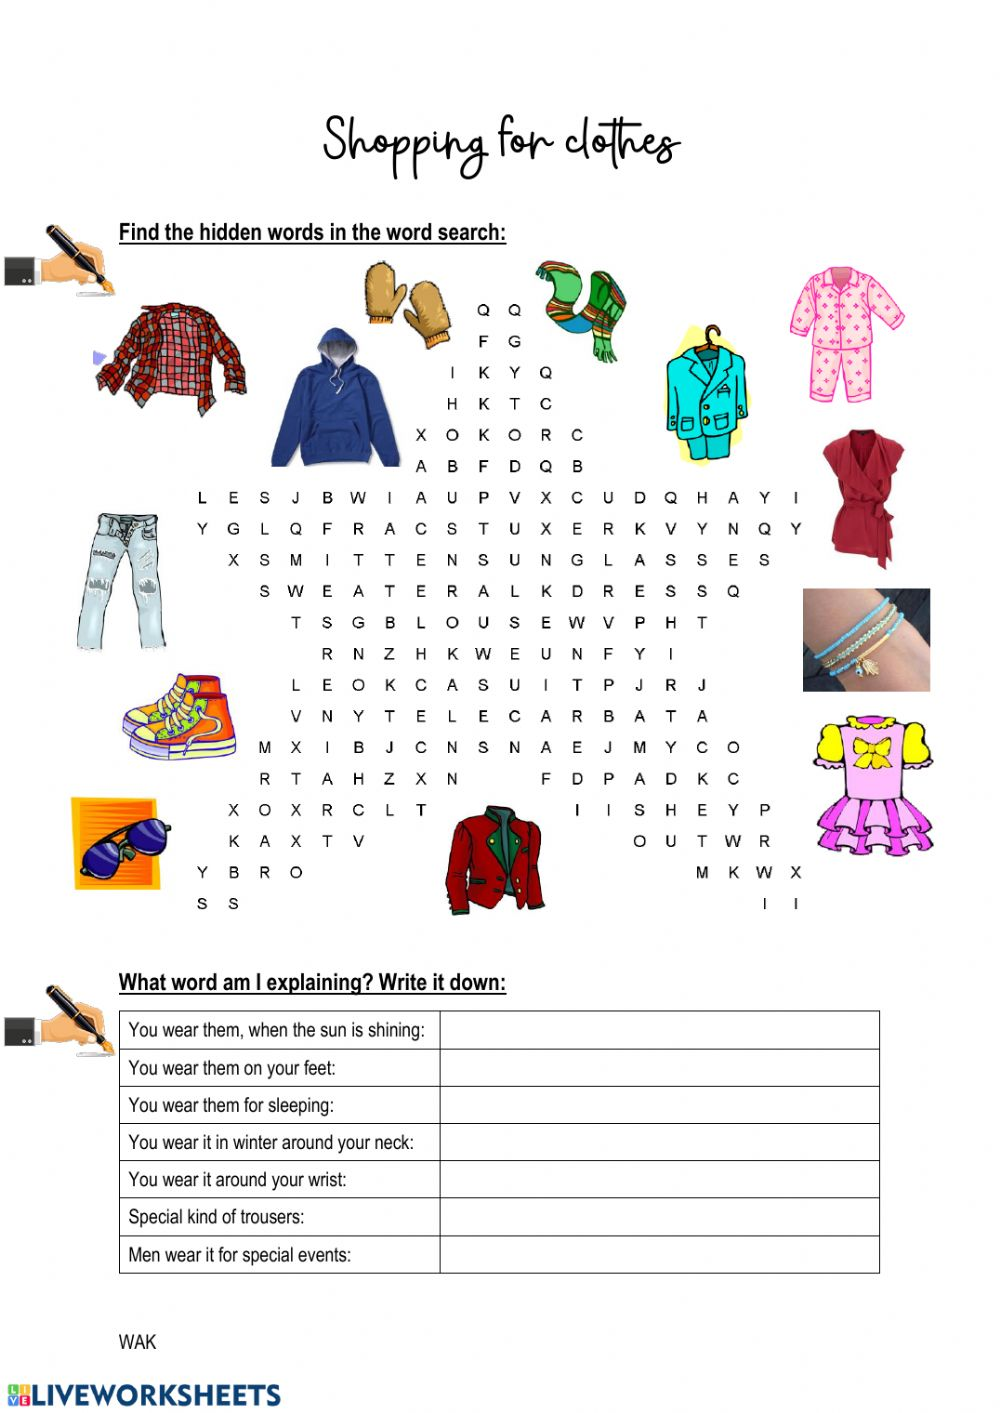 medium resolution of Shopping for clothes worksheet